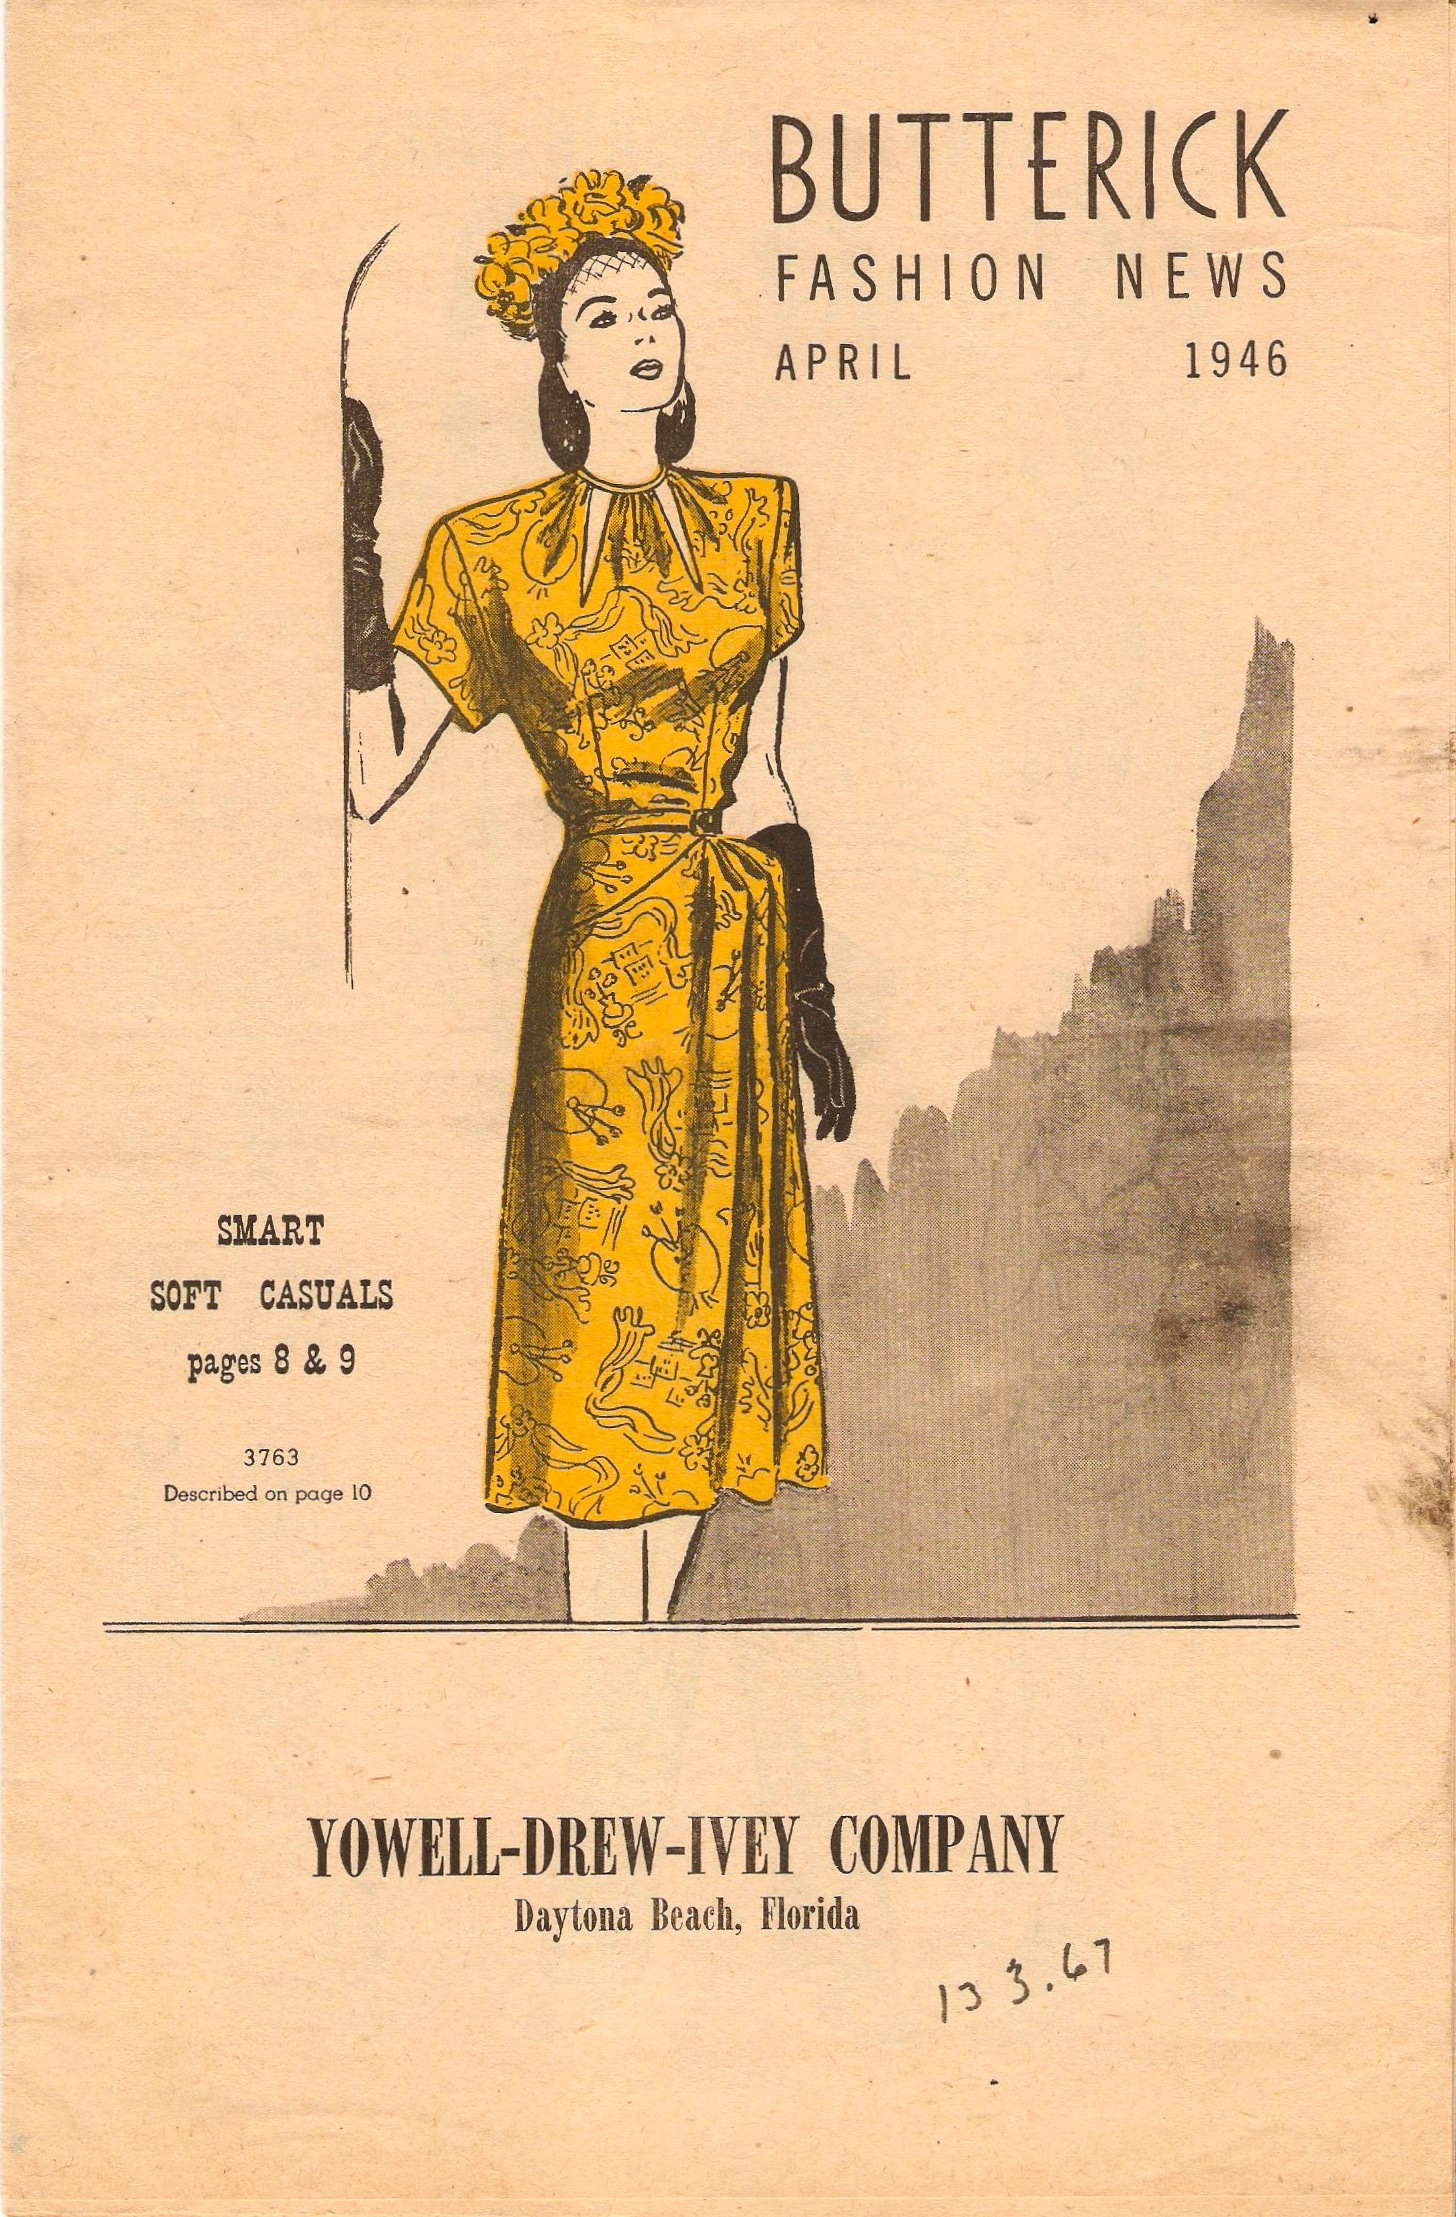 Butterick Fashion News April 1946